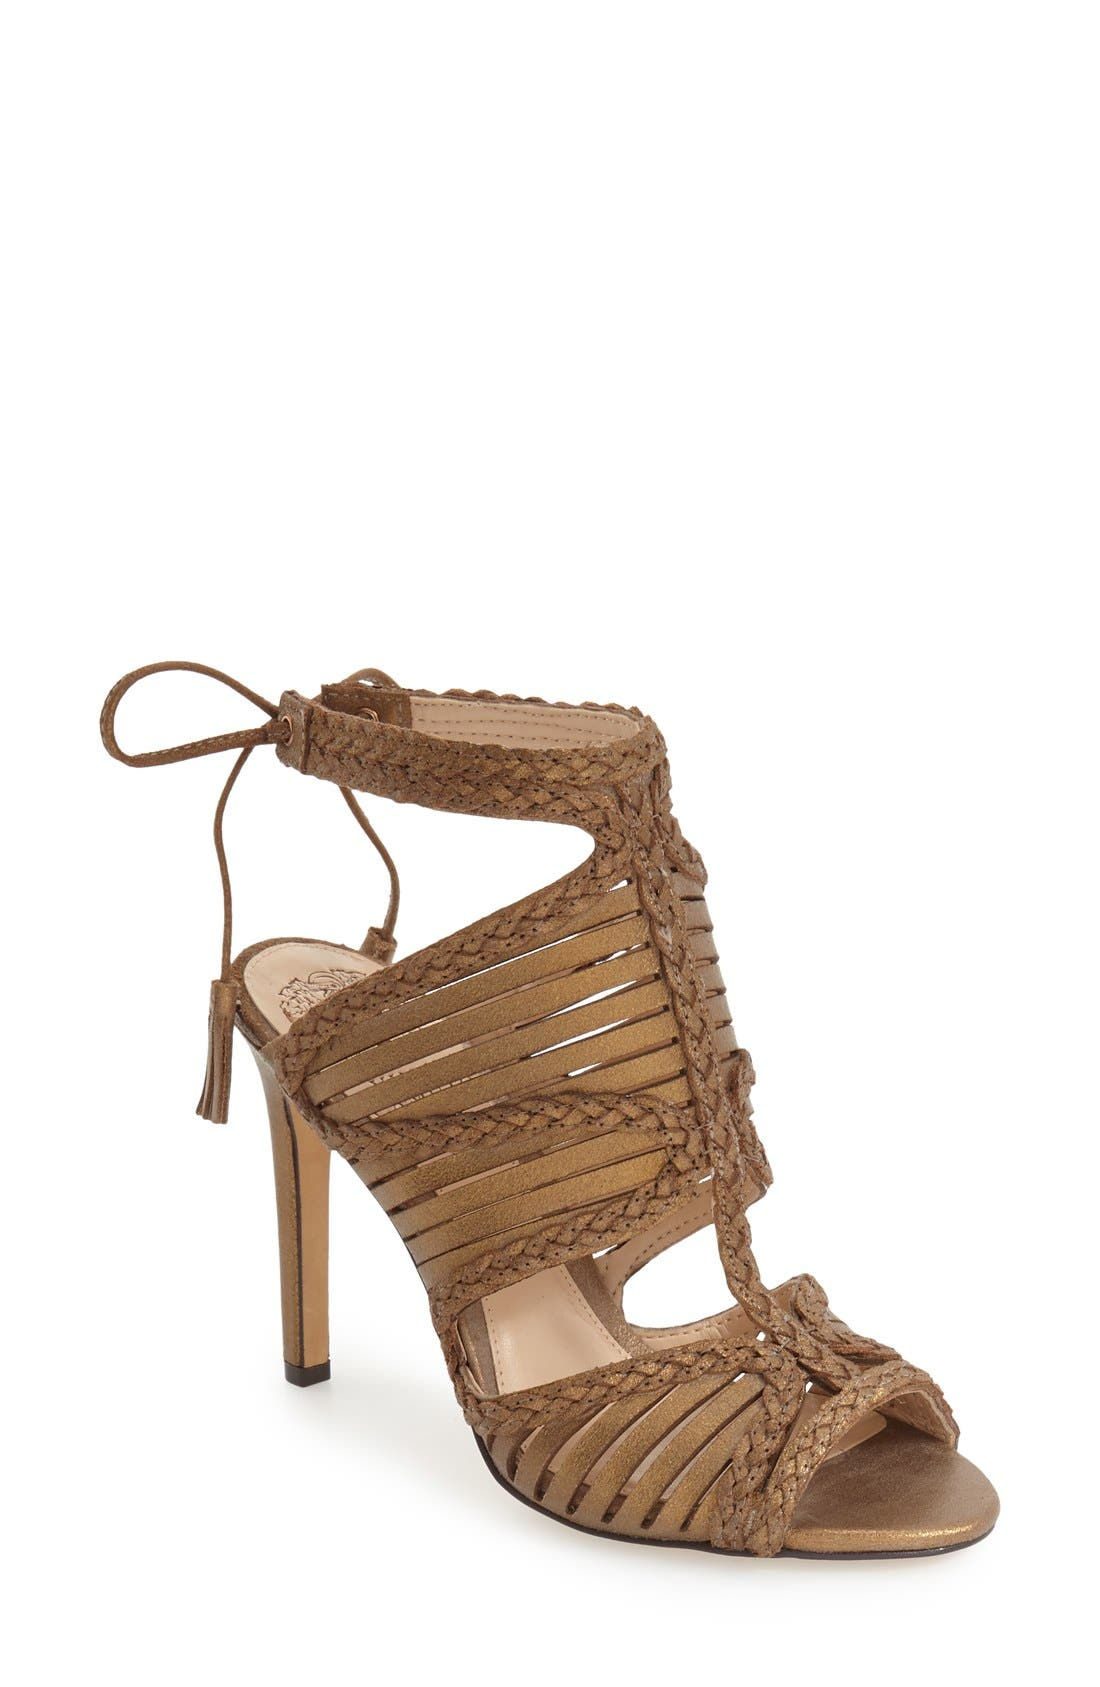 Alternate Image 1 Selected - Vince Camuto 'Kabira' Strappy Sandal (Women)